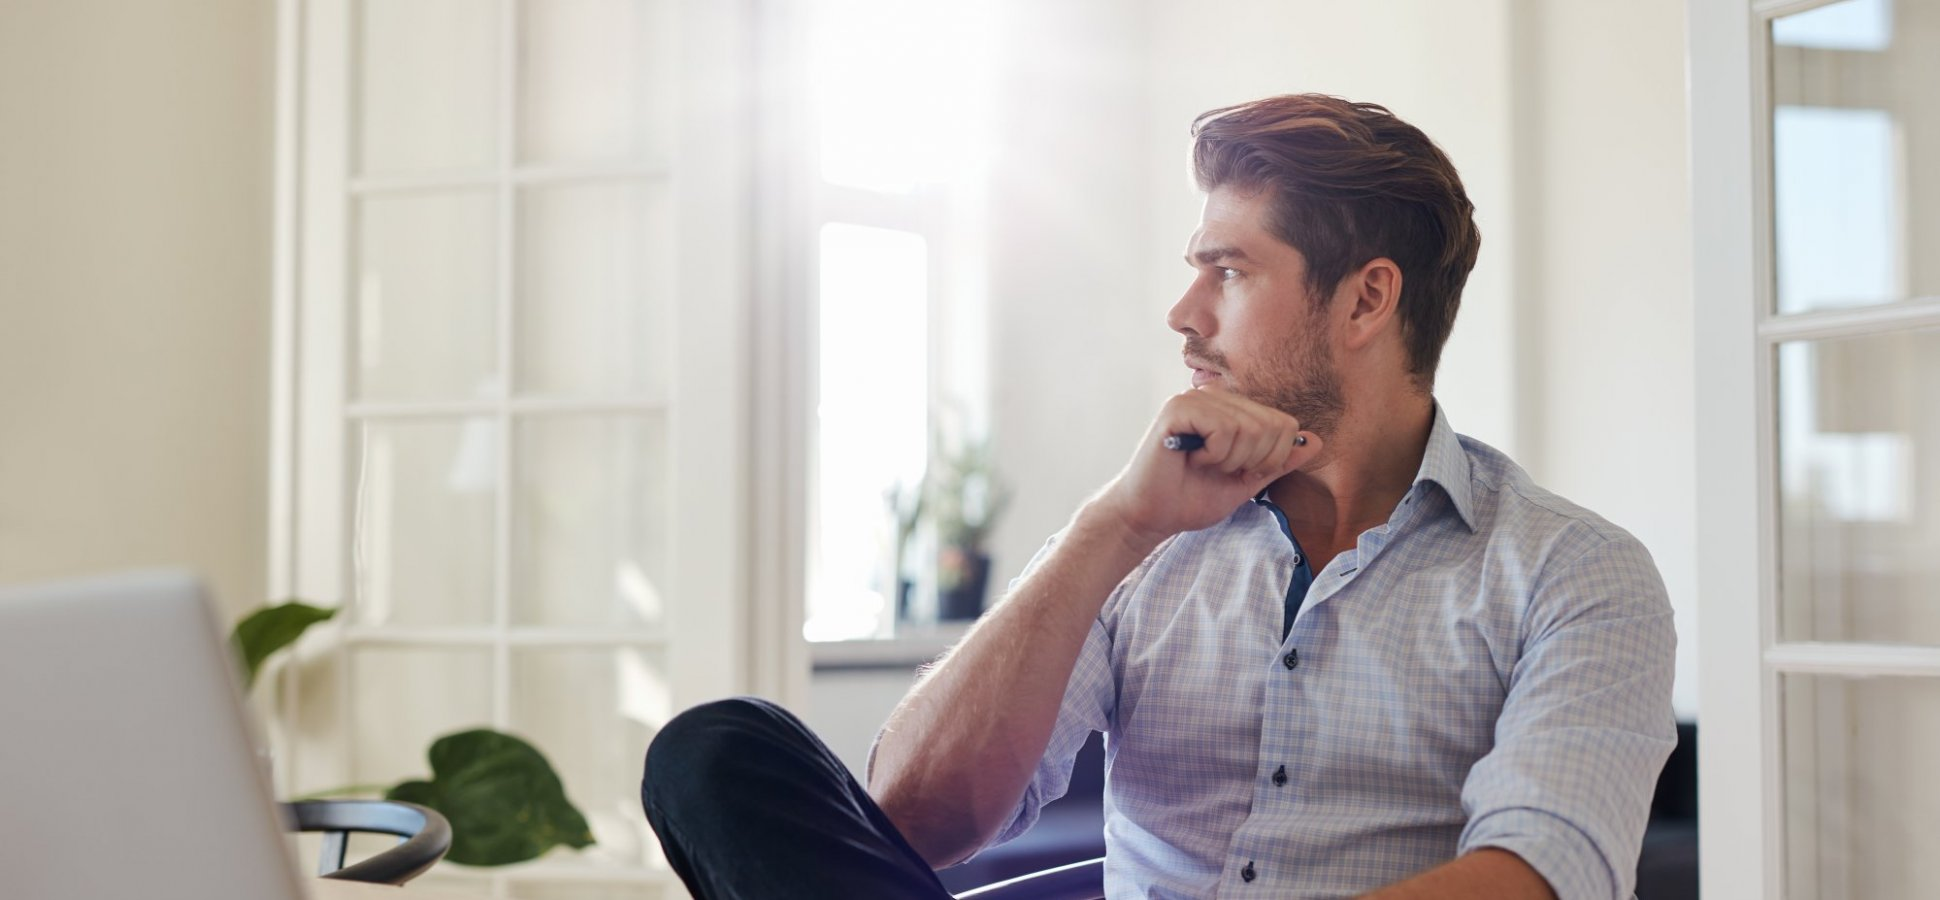 11 Questions Self-Aware Leaders Ask Themselves Daily